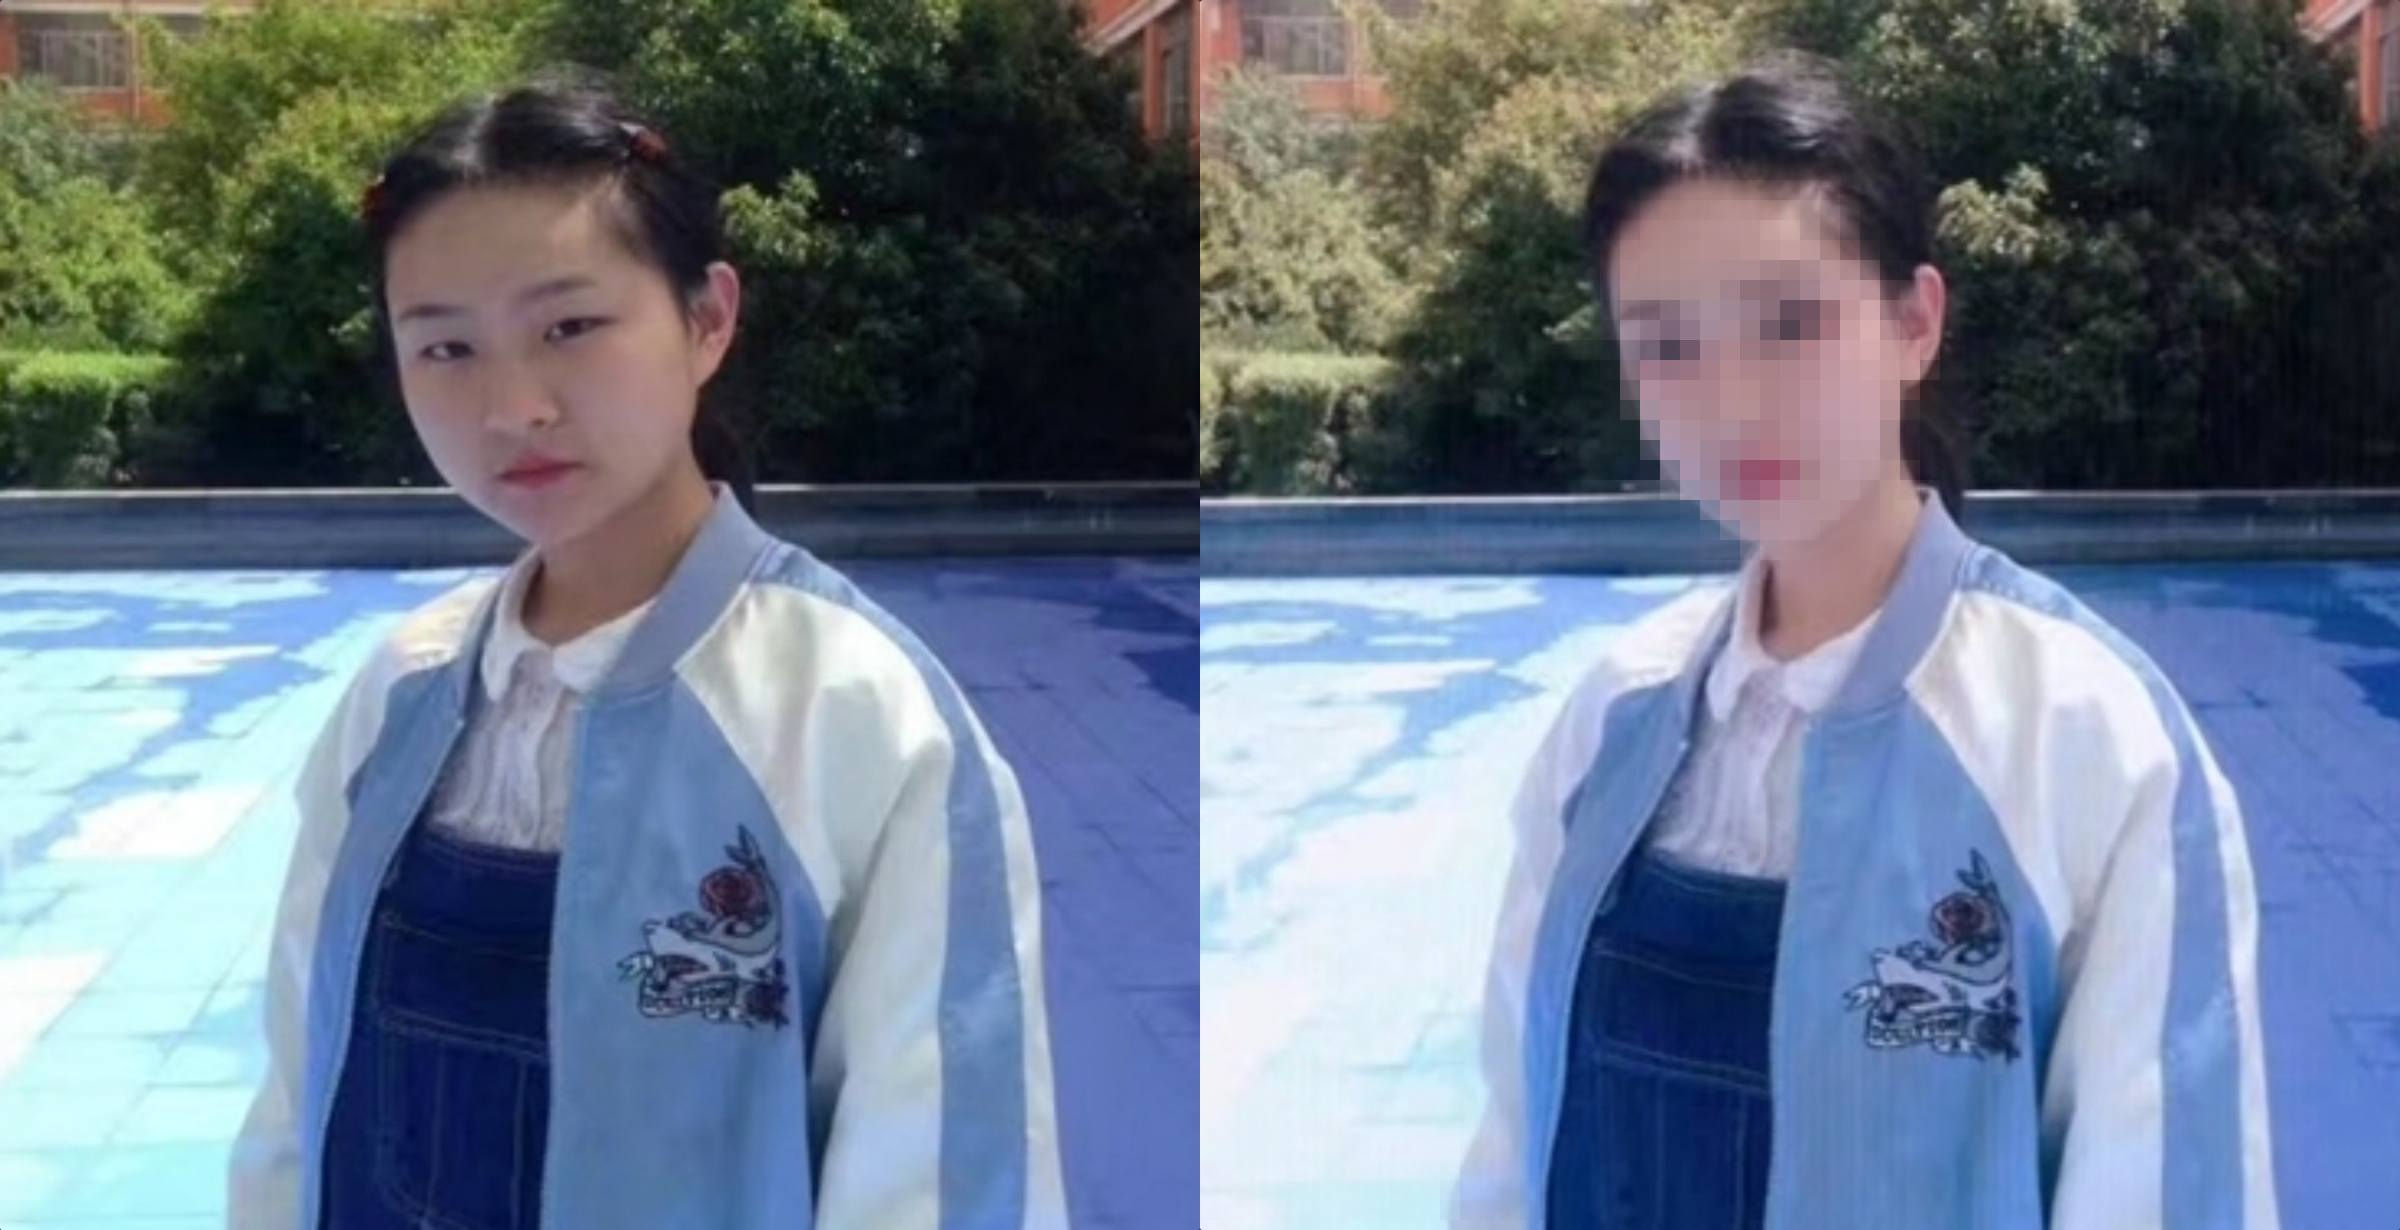 Pictures Show How Amazing Chinese Students Are At Photoshopping Selfies